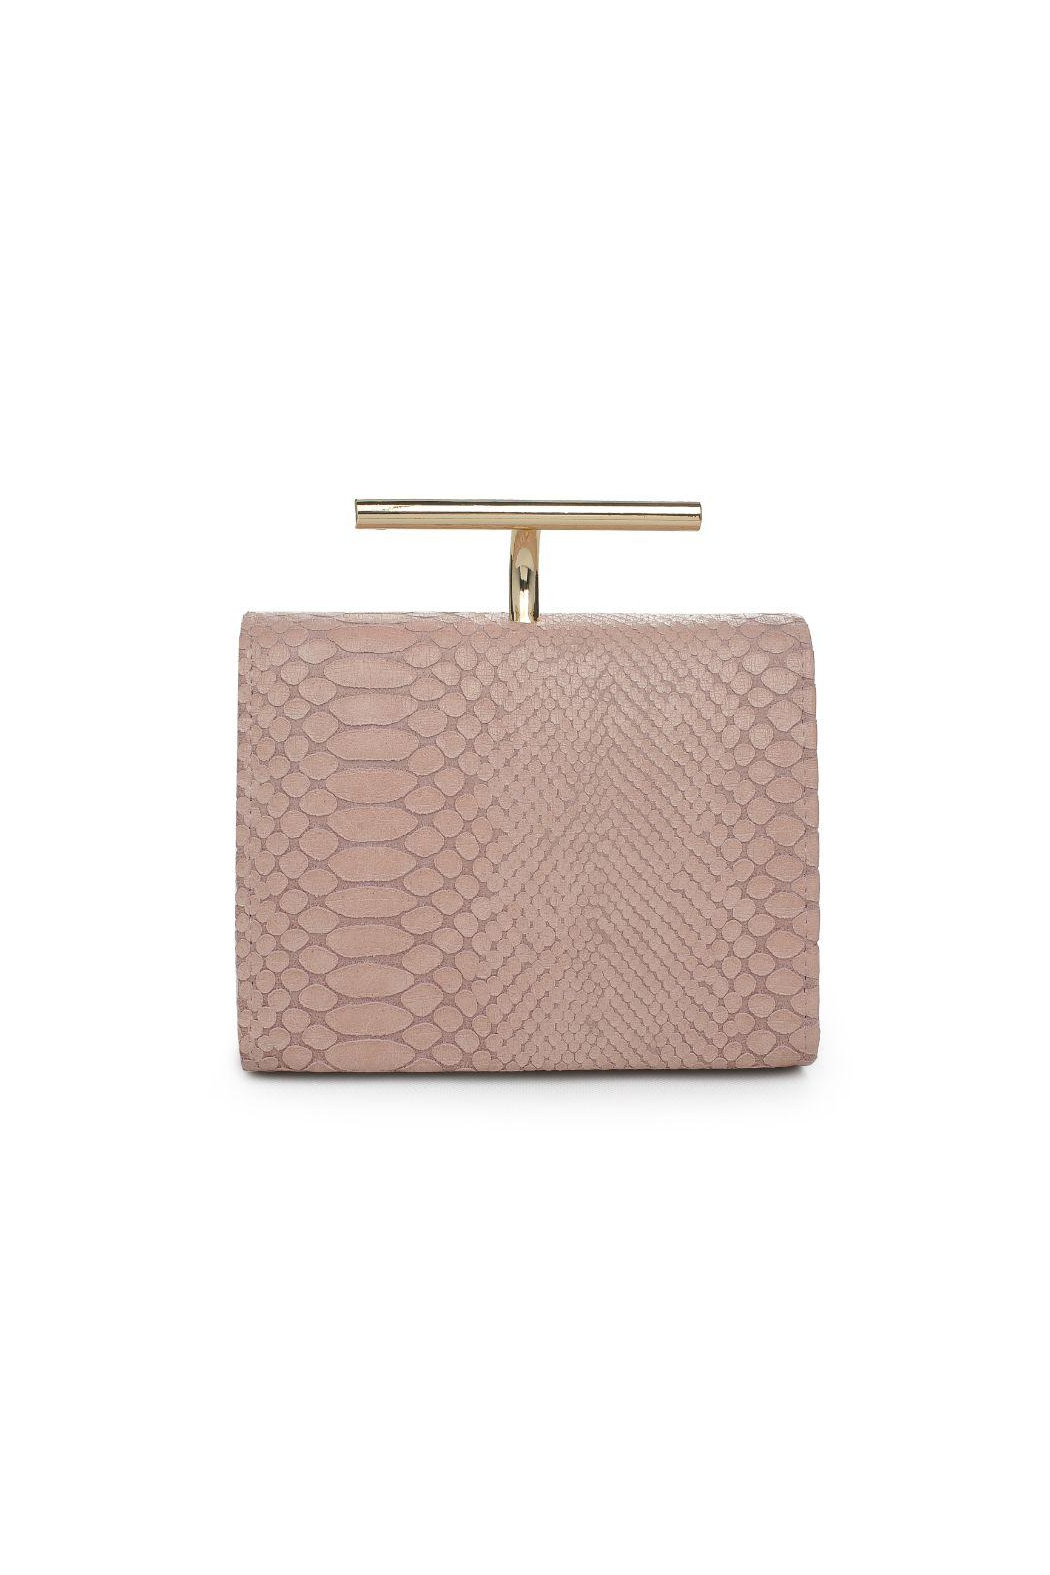 Urban Expressions Posey Mini Bag - Back Cropped Image